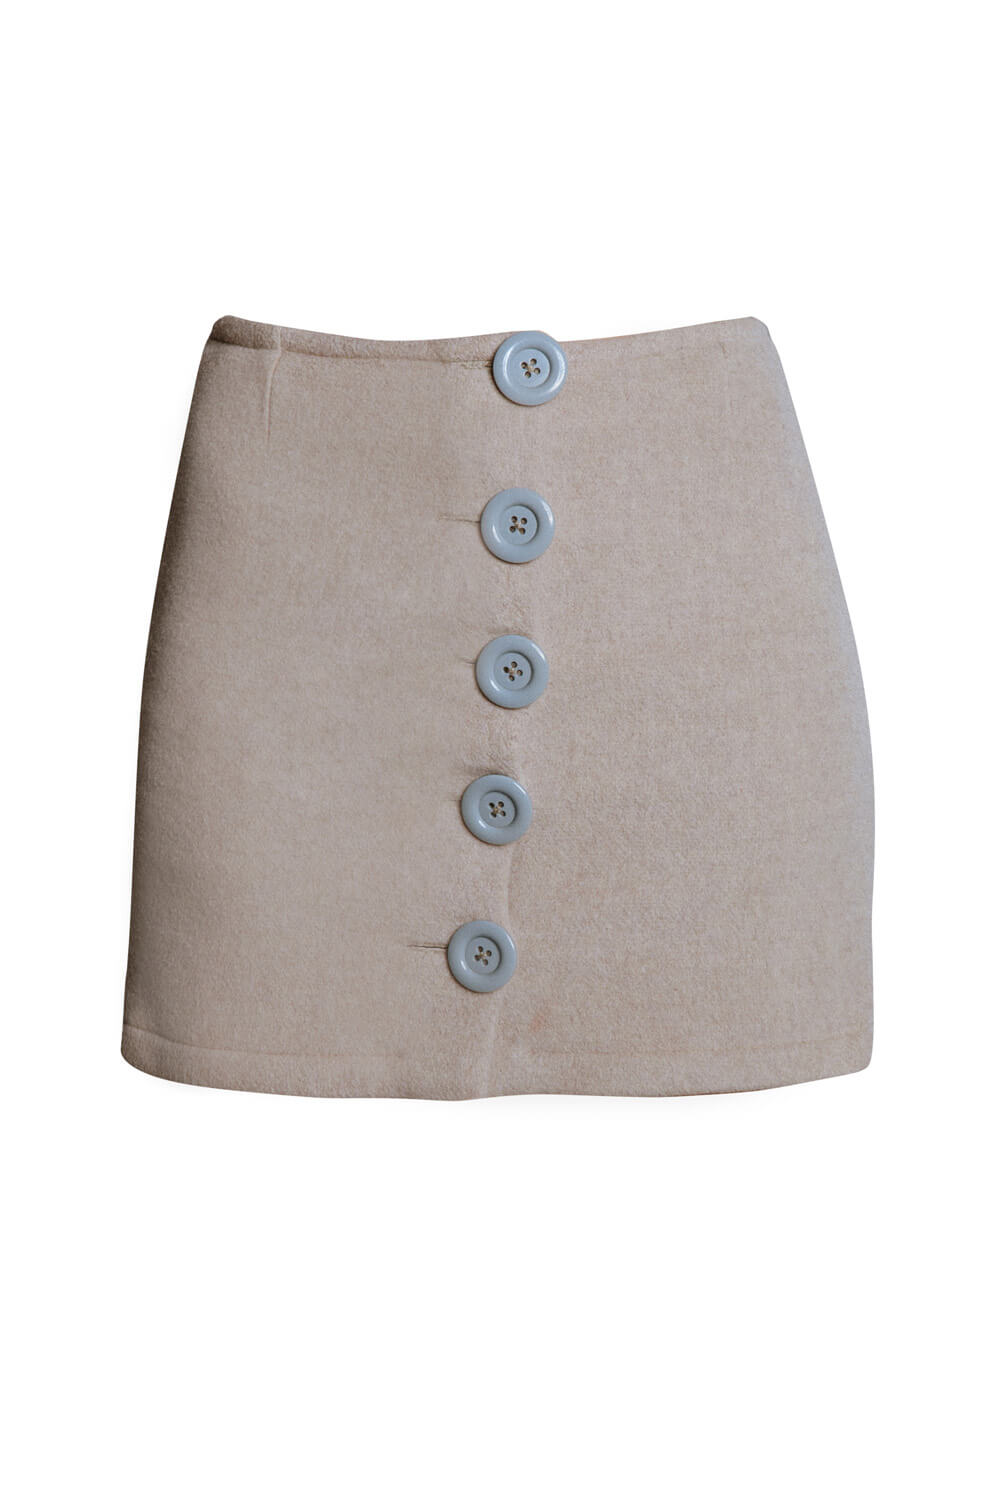 Sopar Collection - FW2019 - Audrey Skirt